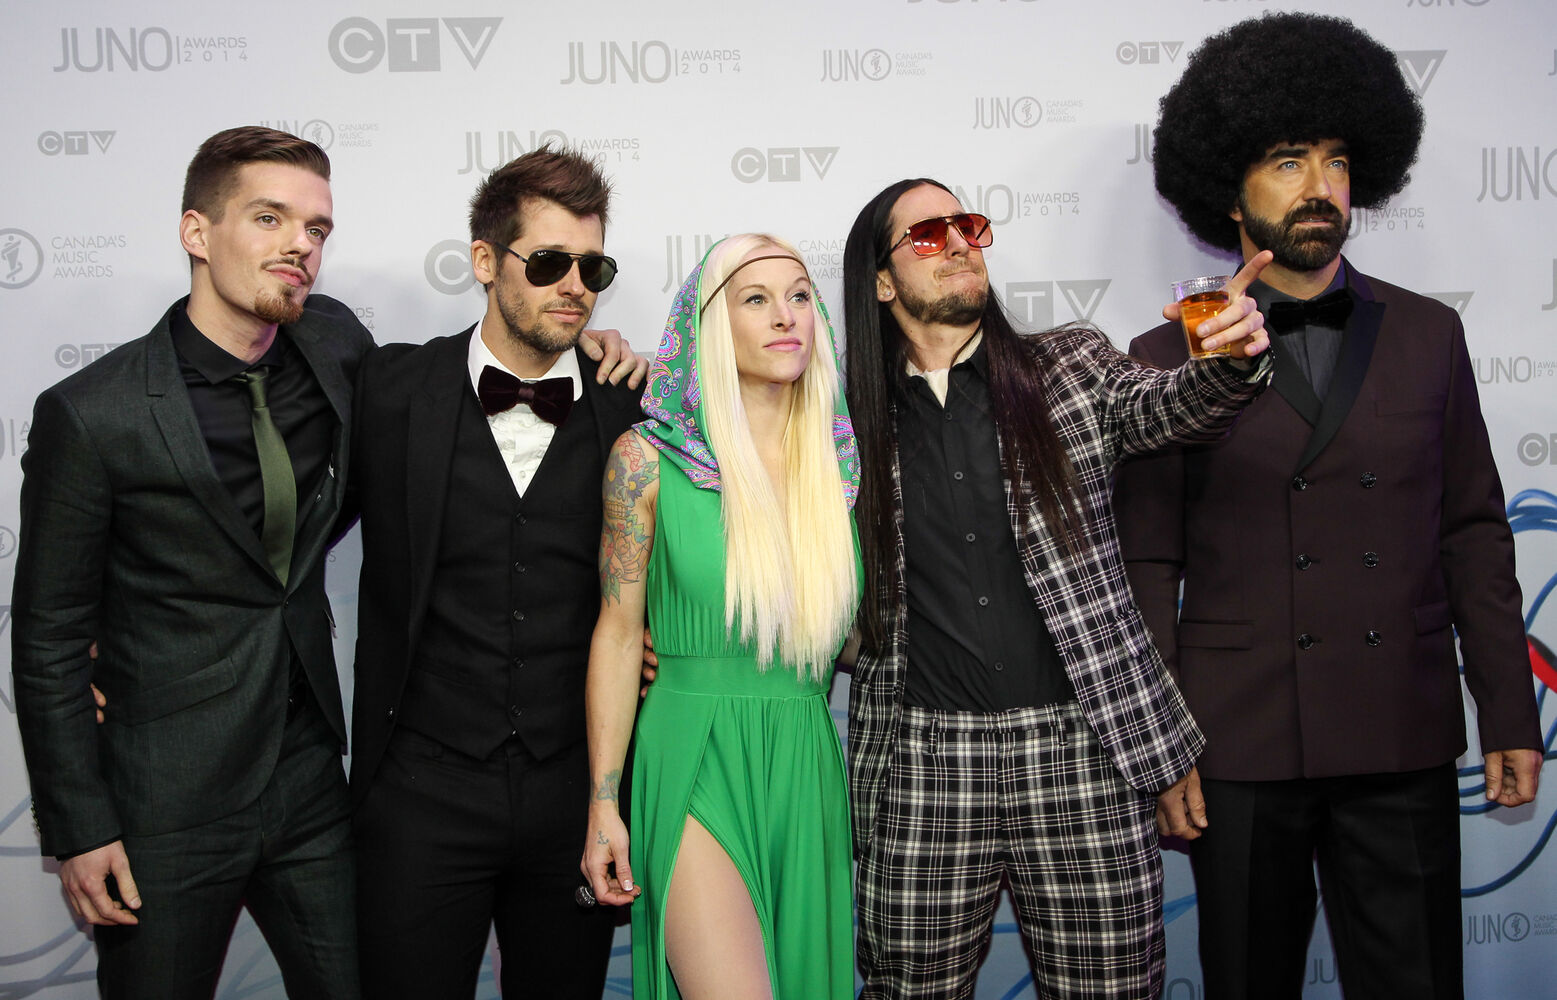 Juno nominees and performers Walk Off The Earth arrive on the 2014 Juno Awards red carpet.(Joe Bryksa/ Winnipeg Free Press) (Joe Bryksa/ Winnipeg Free Press)